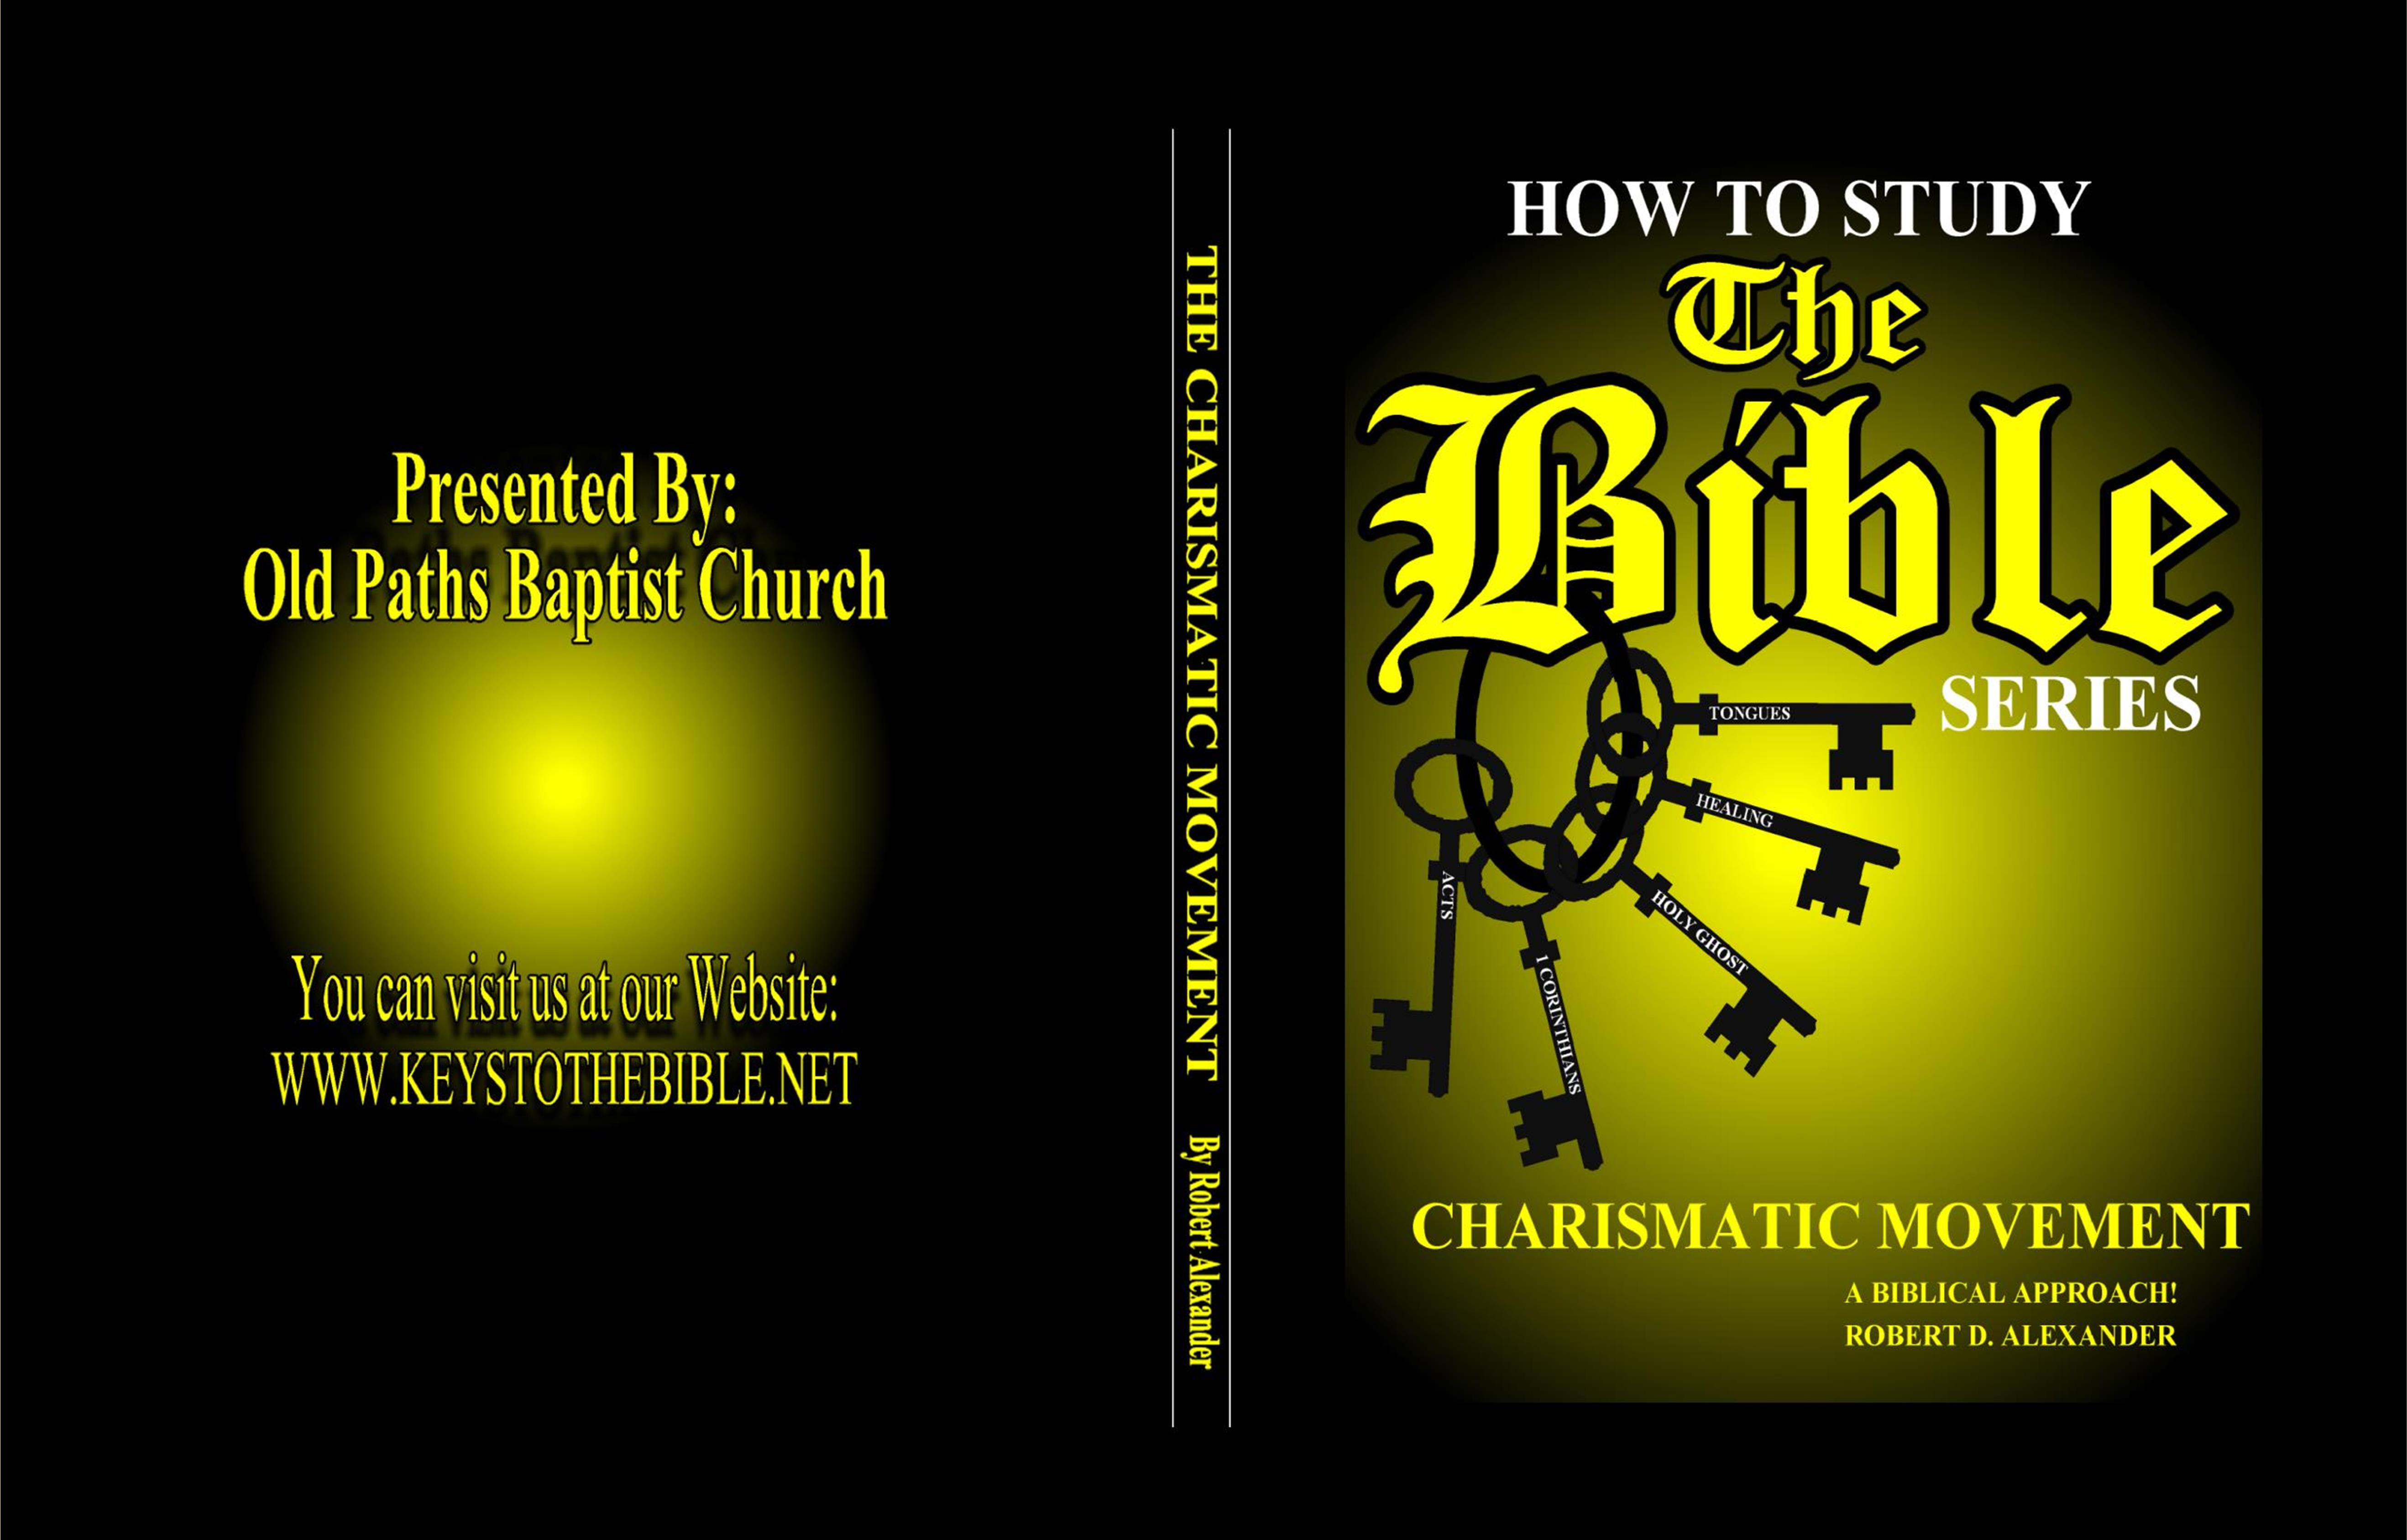 The Charismatic Movement cover image